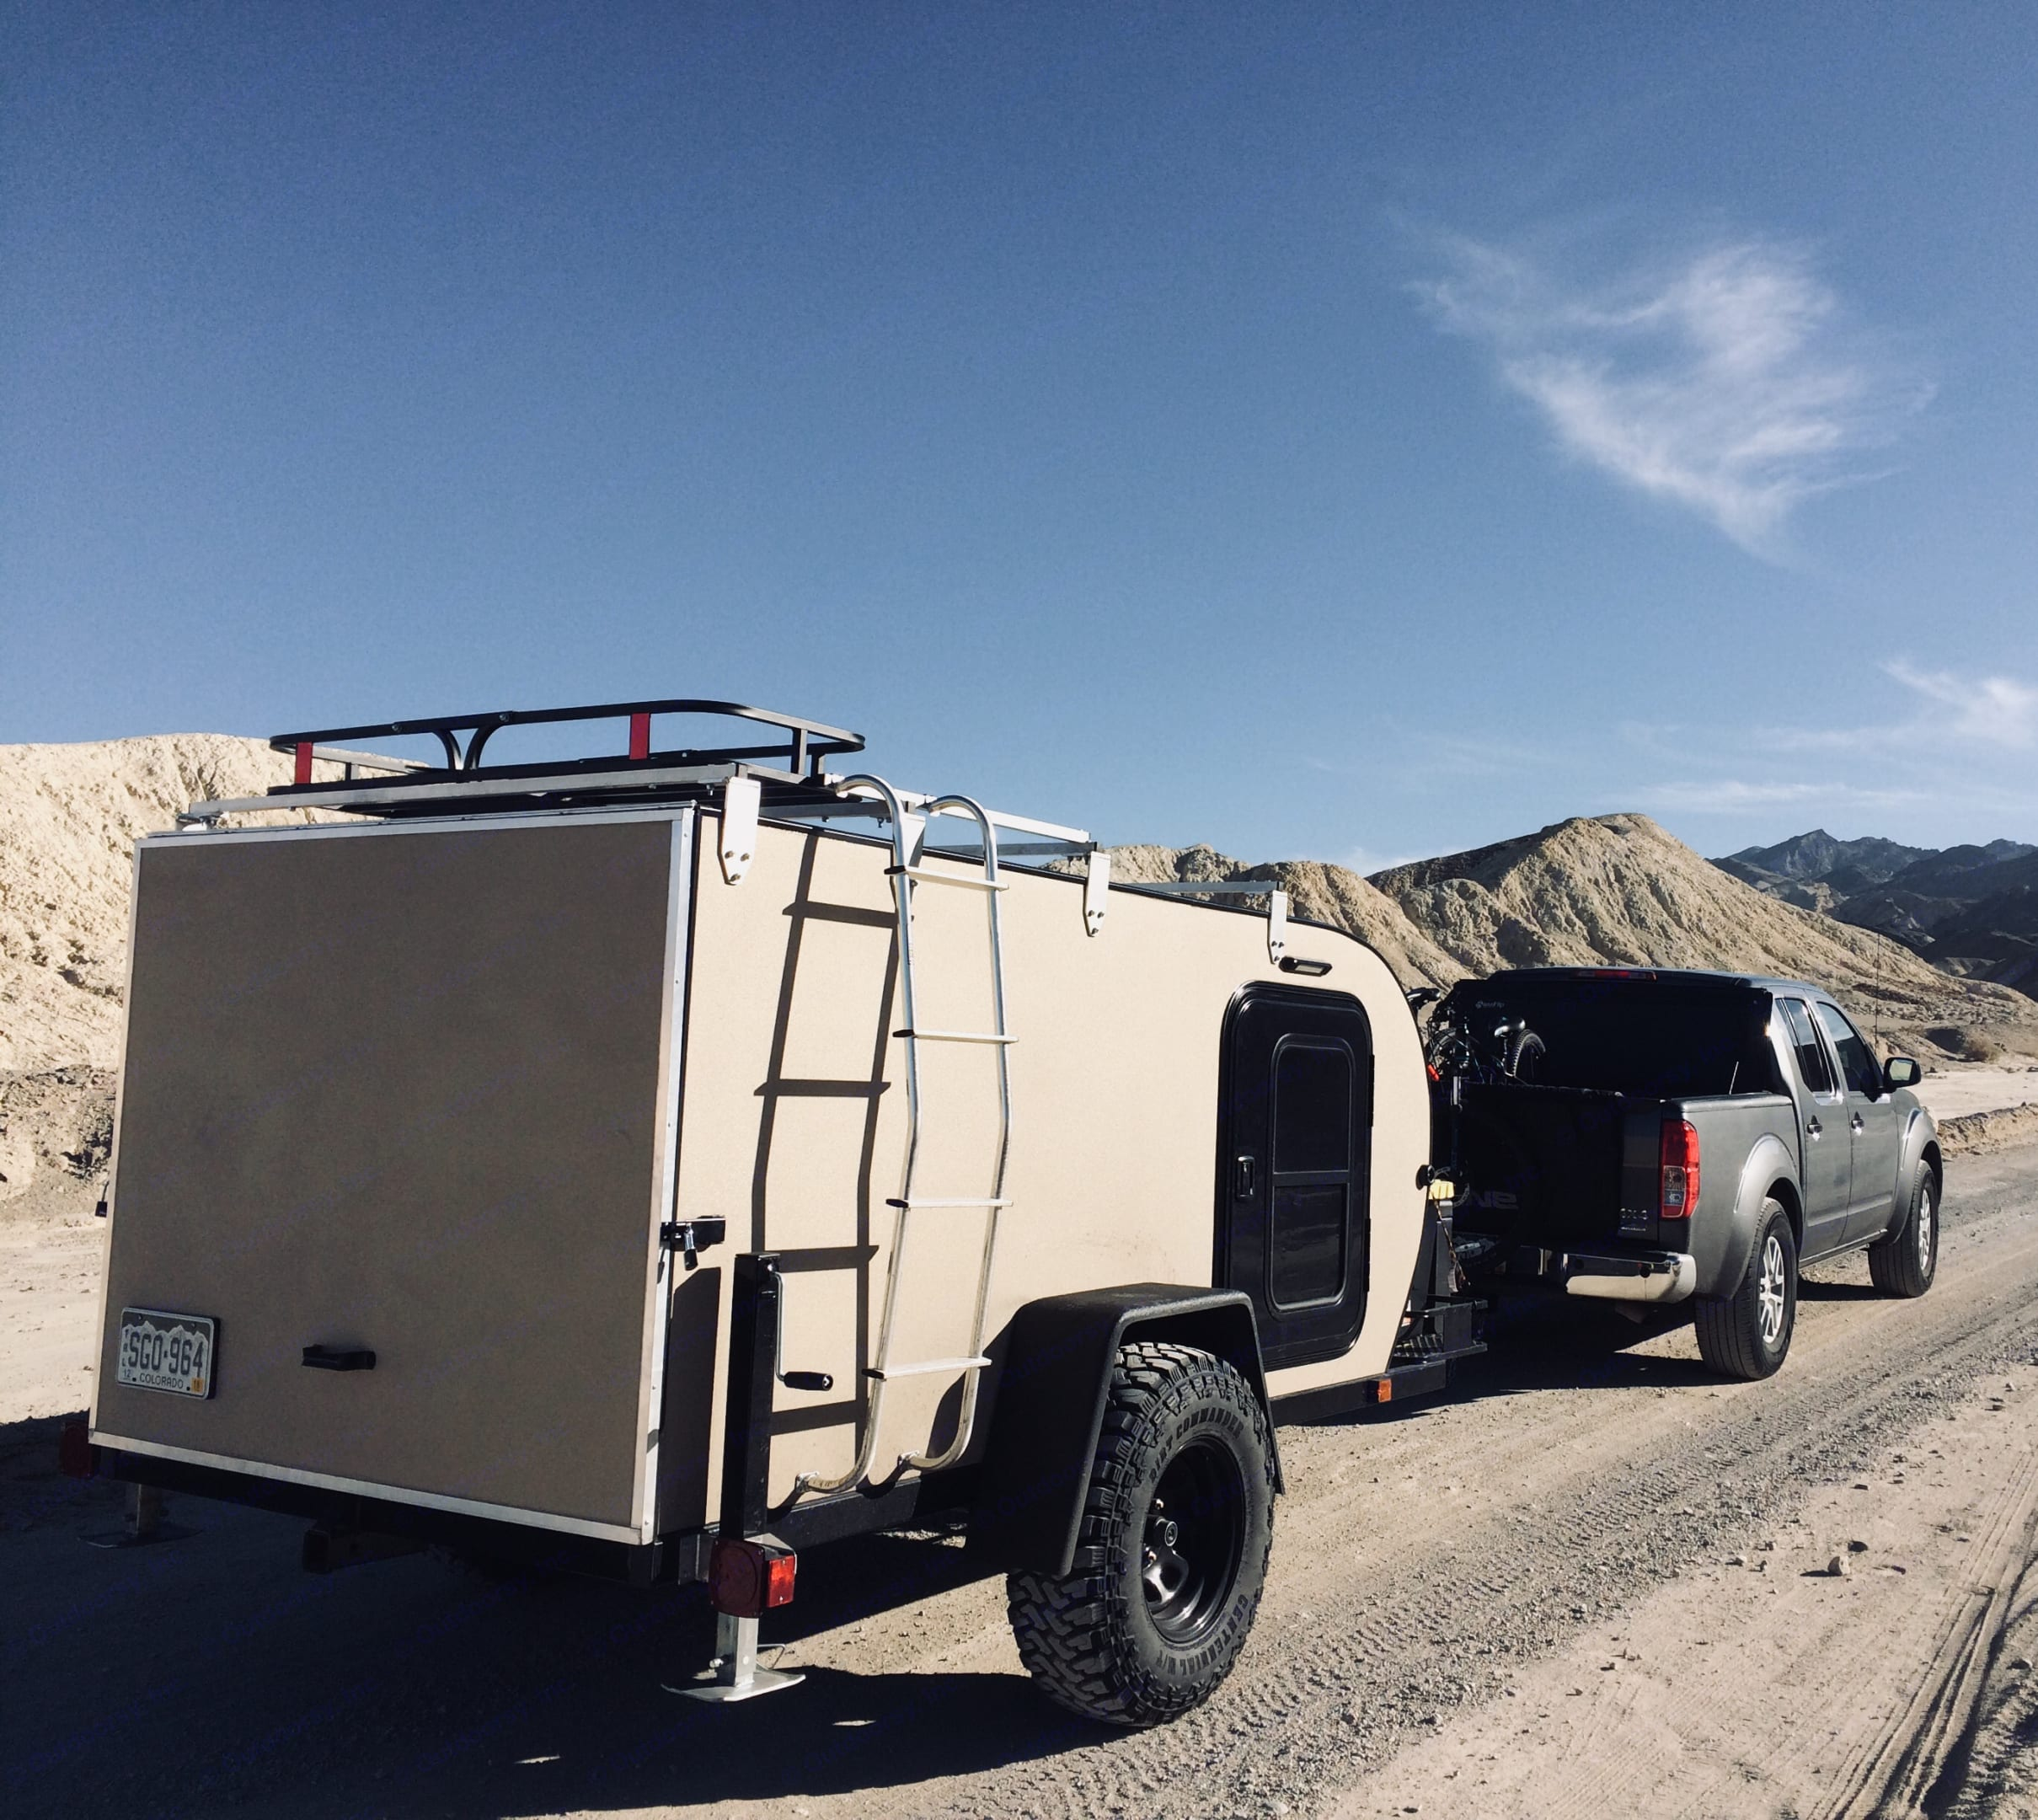 Attached ladder makes it easy to access  roof top storage basket. Oversized tires for easy to moderate back country roads. . Alpine Other 2017